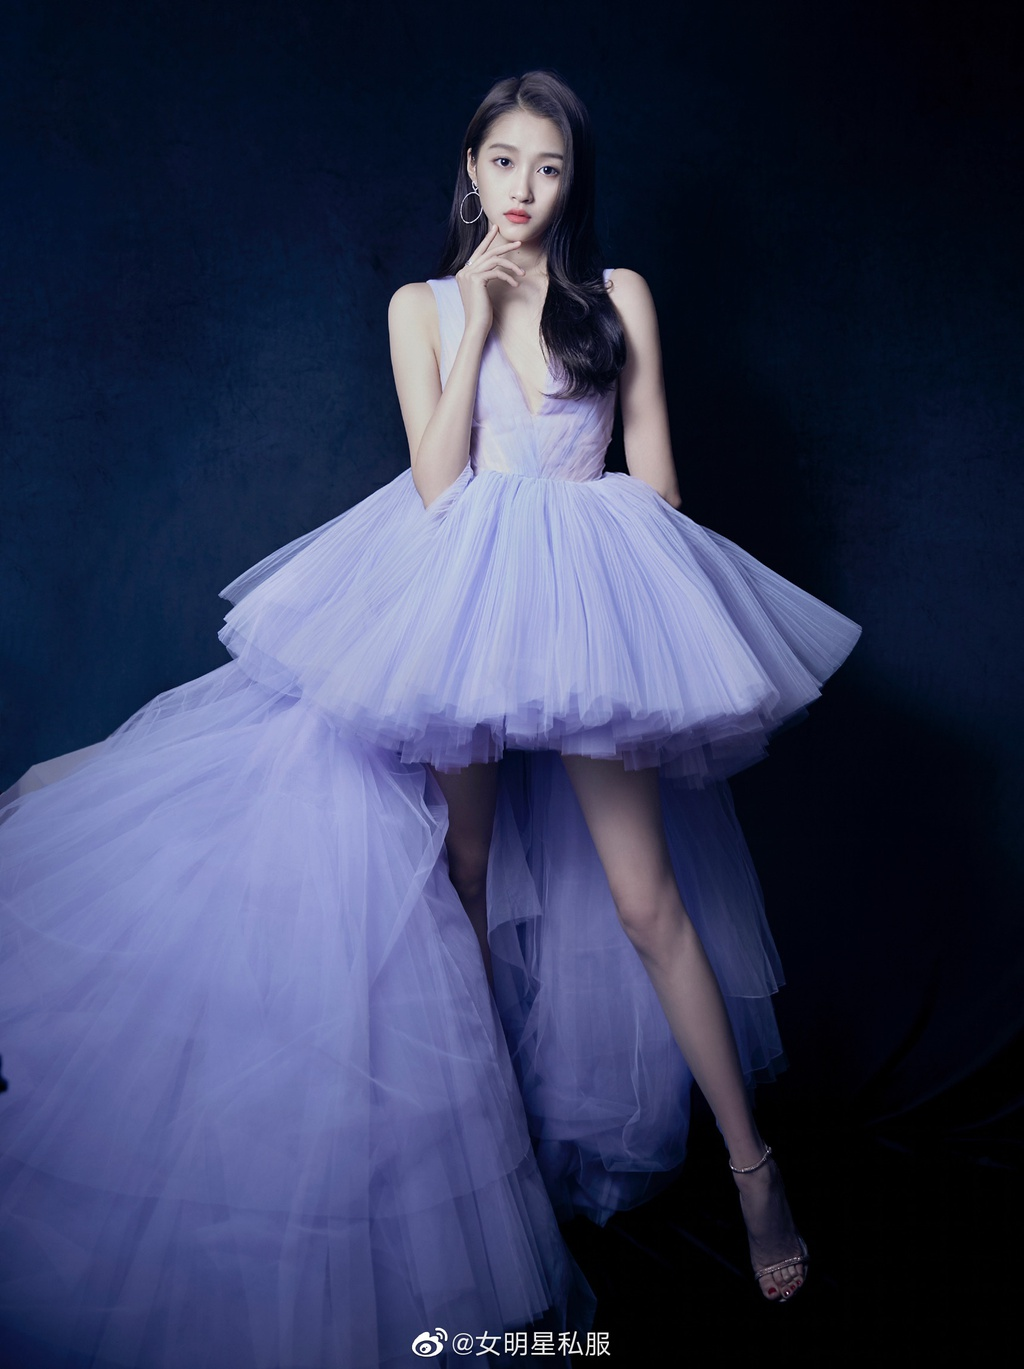 Hinh anh Angelababy anh 3